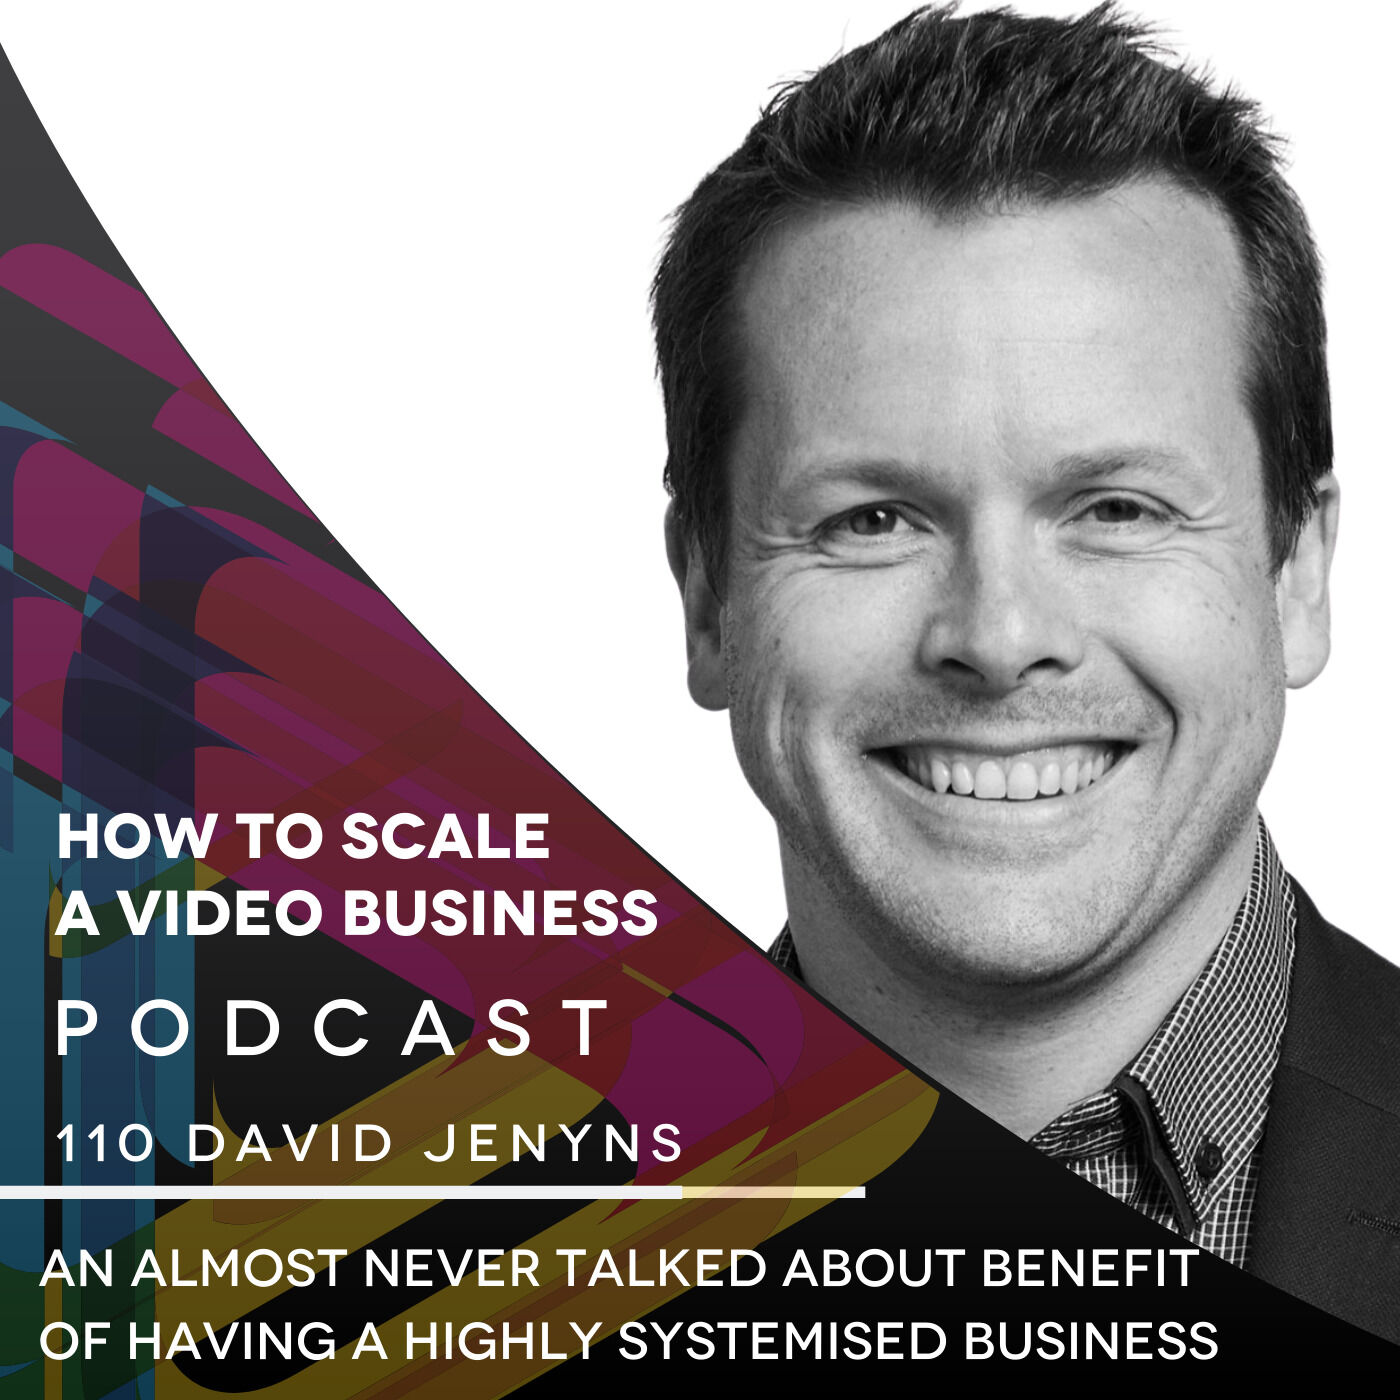 An almost never talked about benefit of having a highly systemised business - EP #110 with David Jenyns